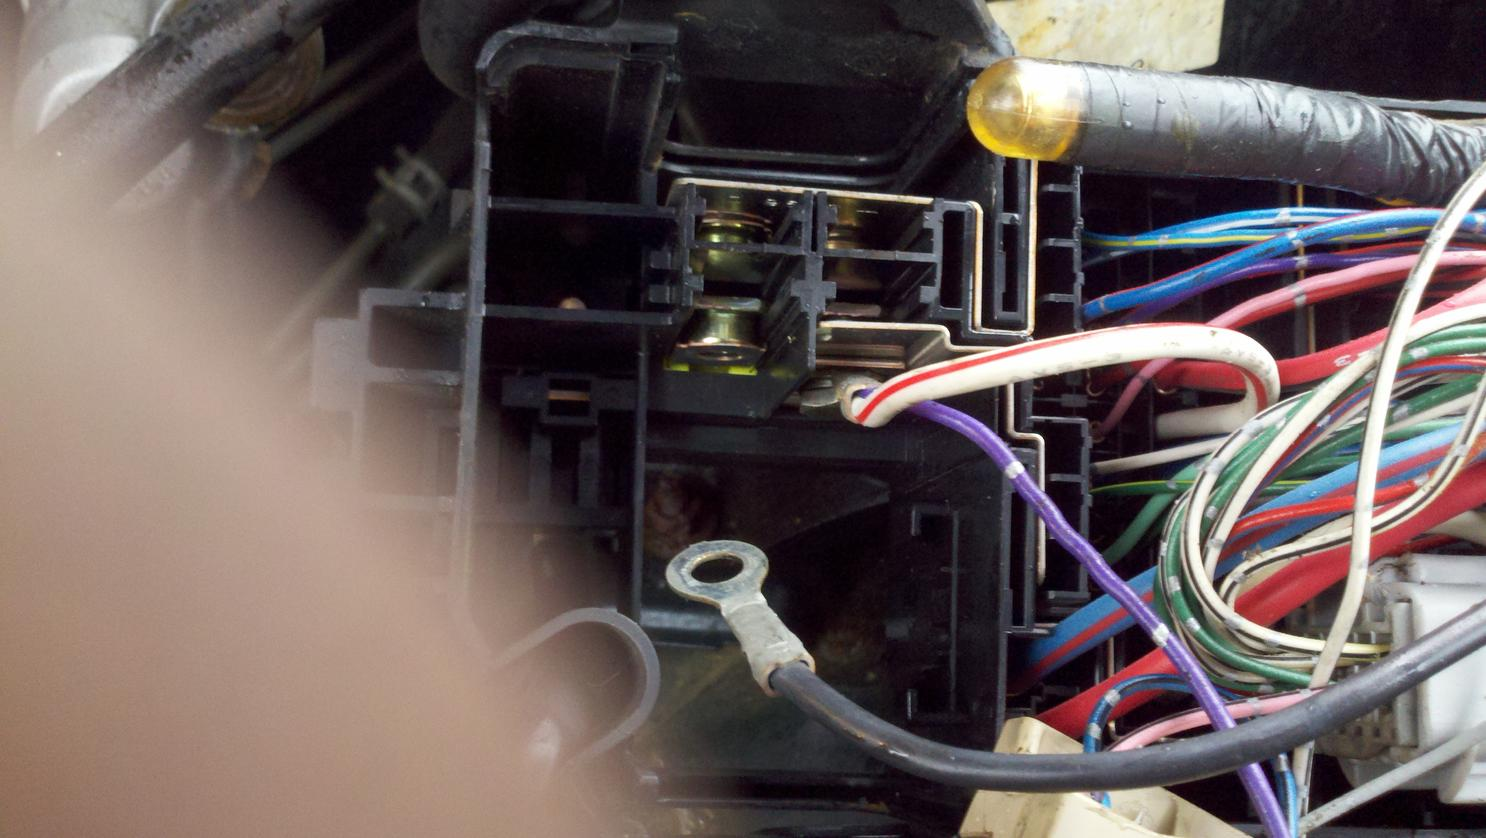 98 4runner Fuse Box Wiring Help Toyota Forum Largest A Attached 1344 Kb